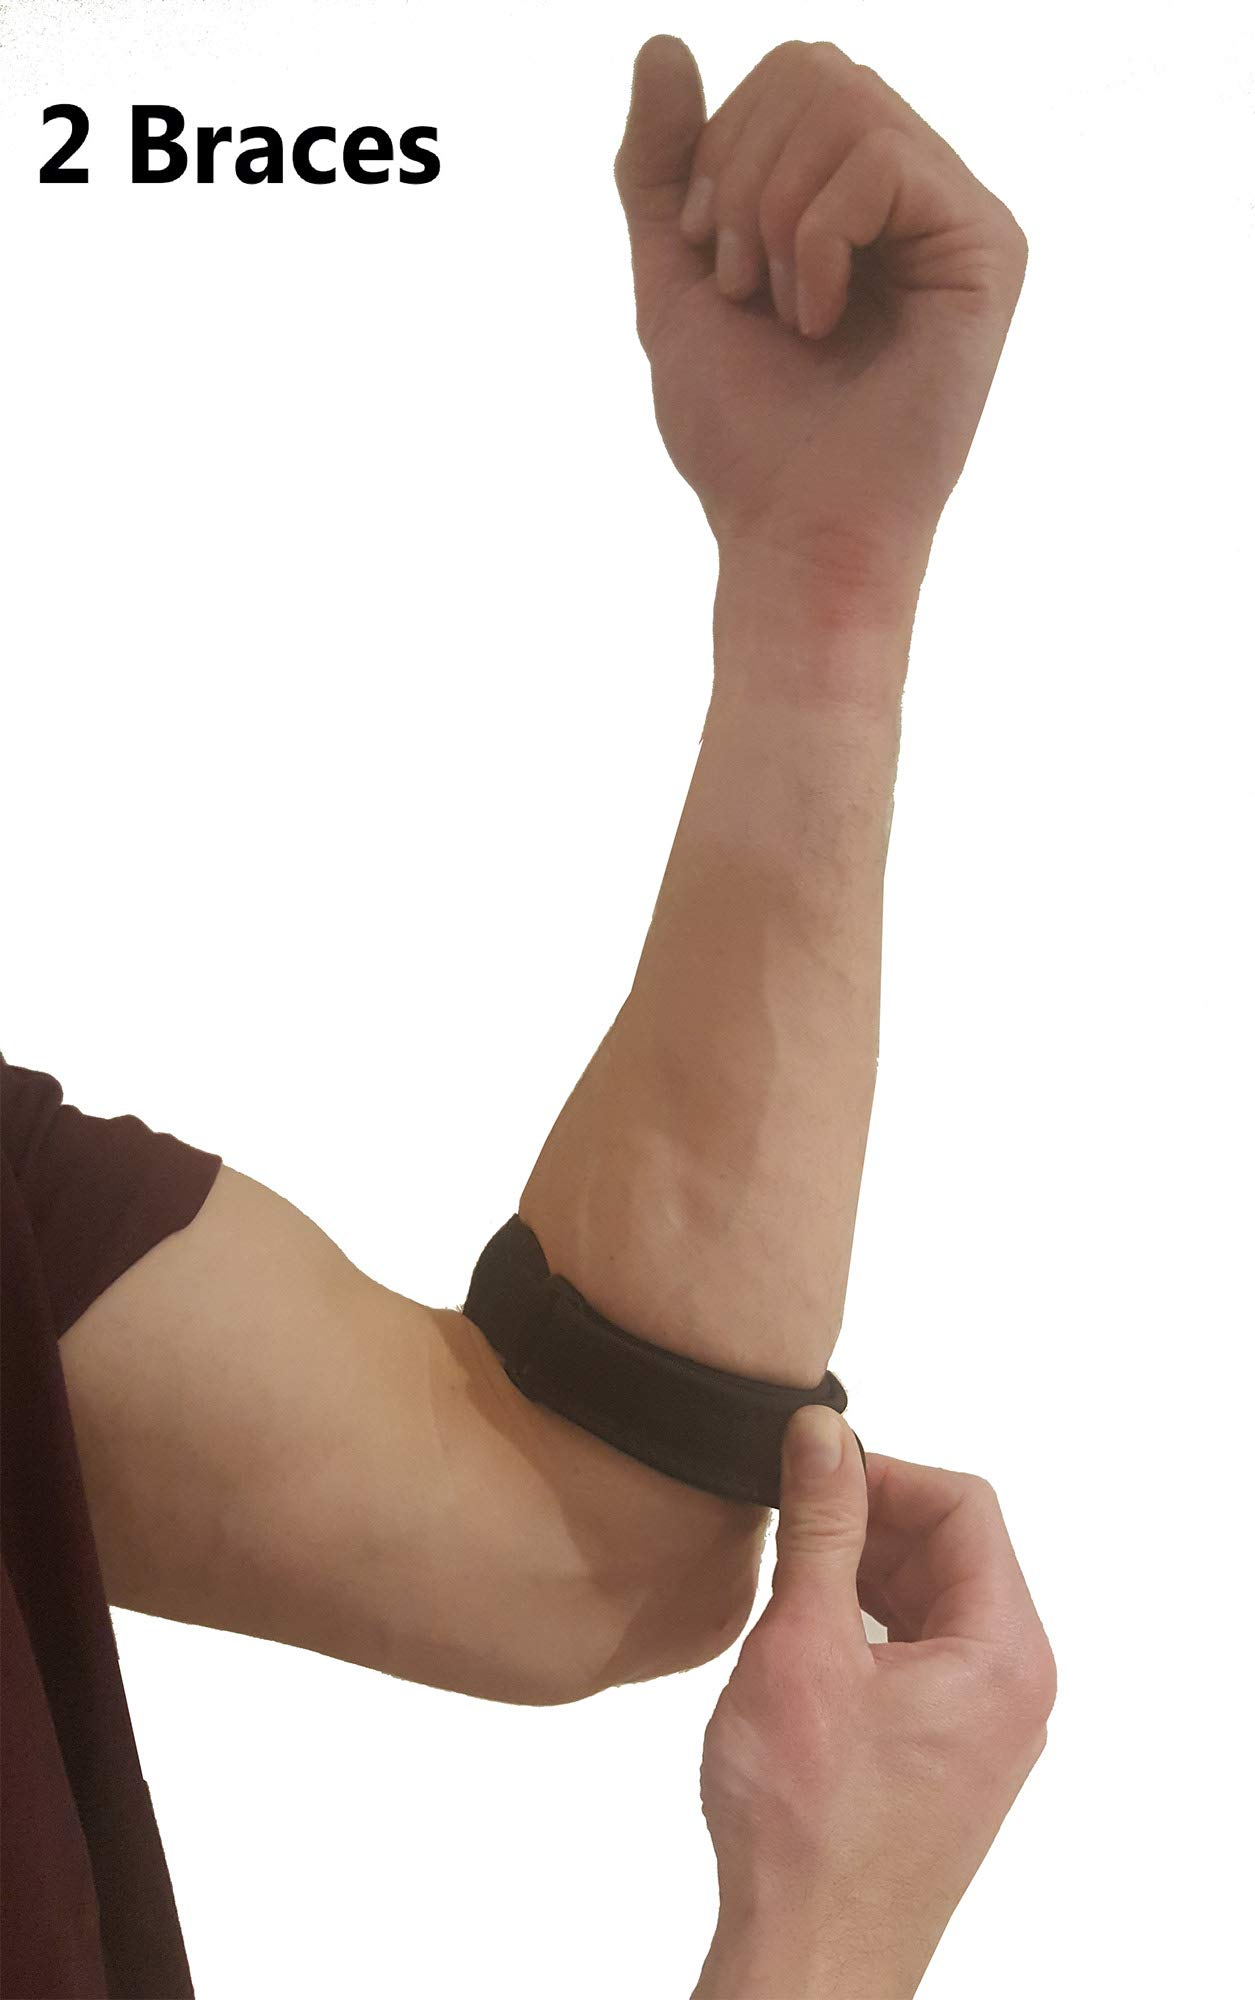 Tennis Elbow Strap Forearm Brace - Comfortable Tennis Elbow Brace for Tendonitis, Lateral Epicondylitis Pain Relief. Tennis Elbow Treatment or Golfers Elbow Band for Compression & Elbow Support by ARMSTRONG AMERIKA